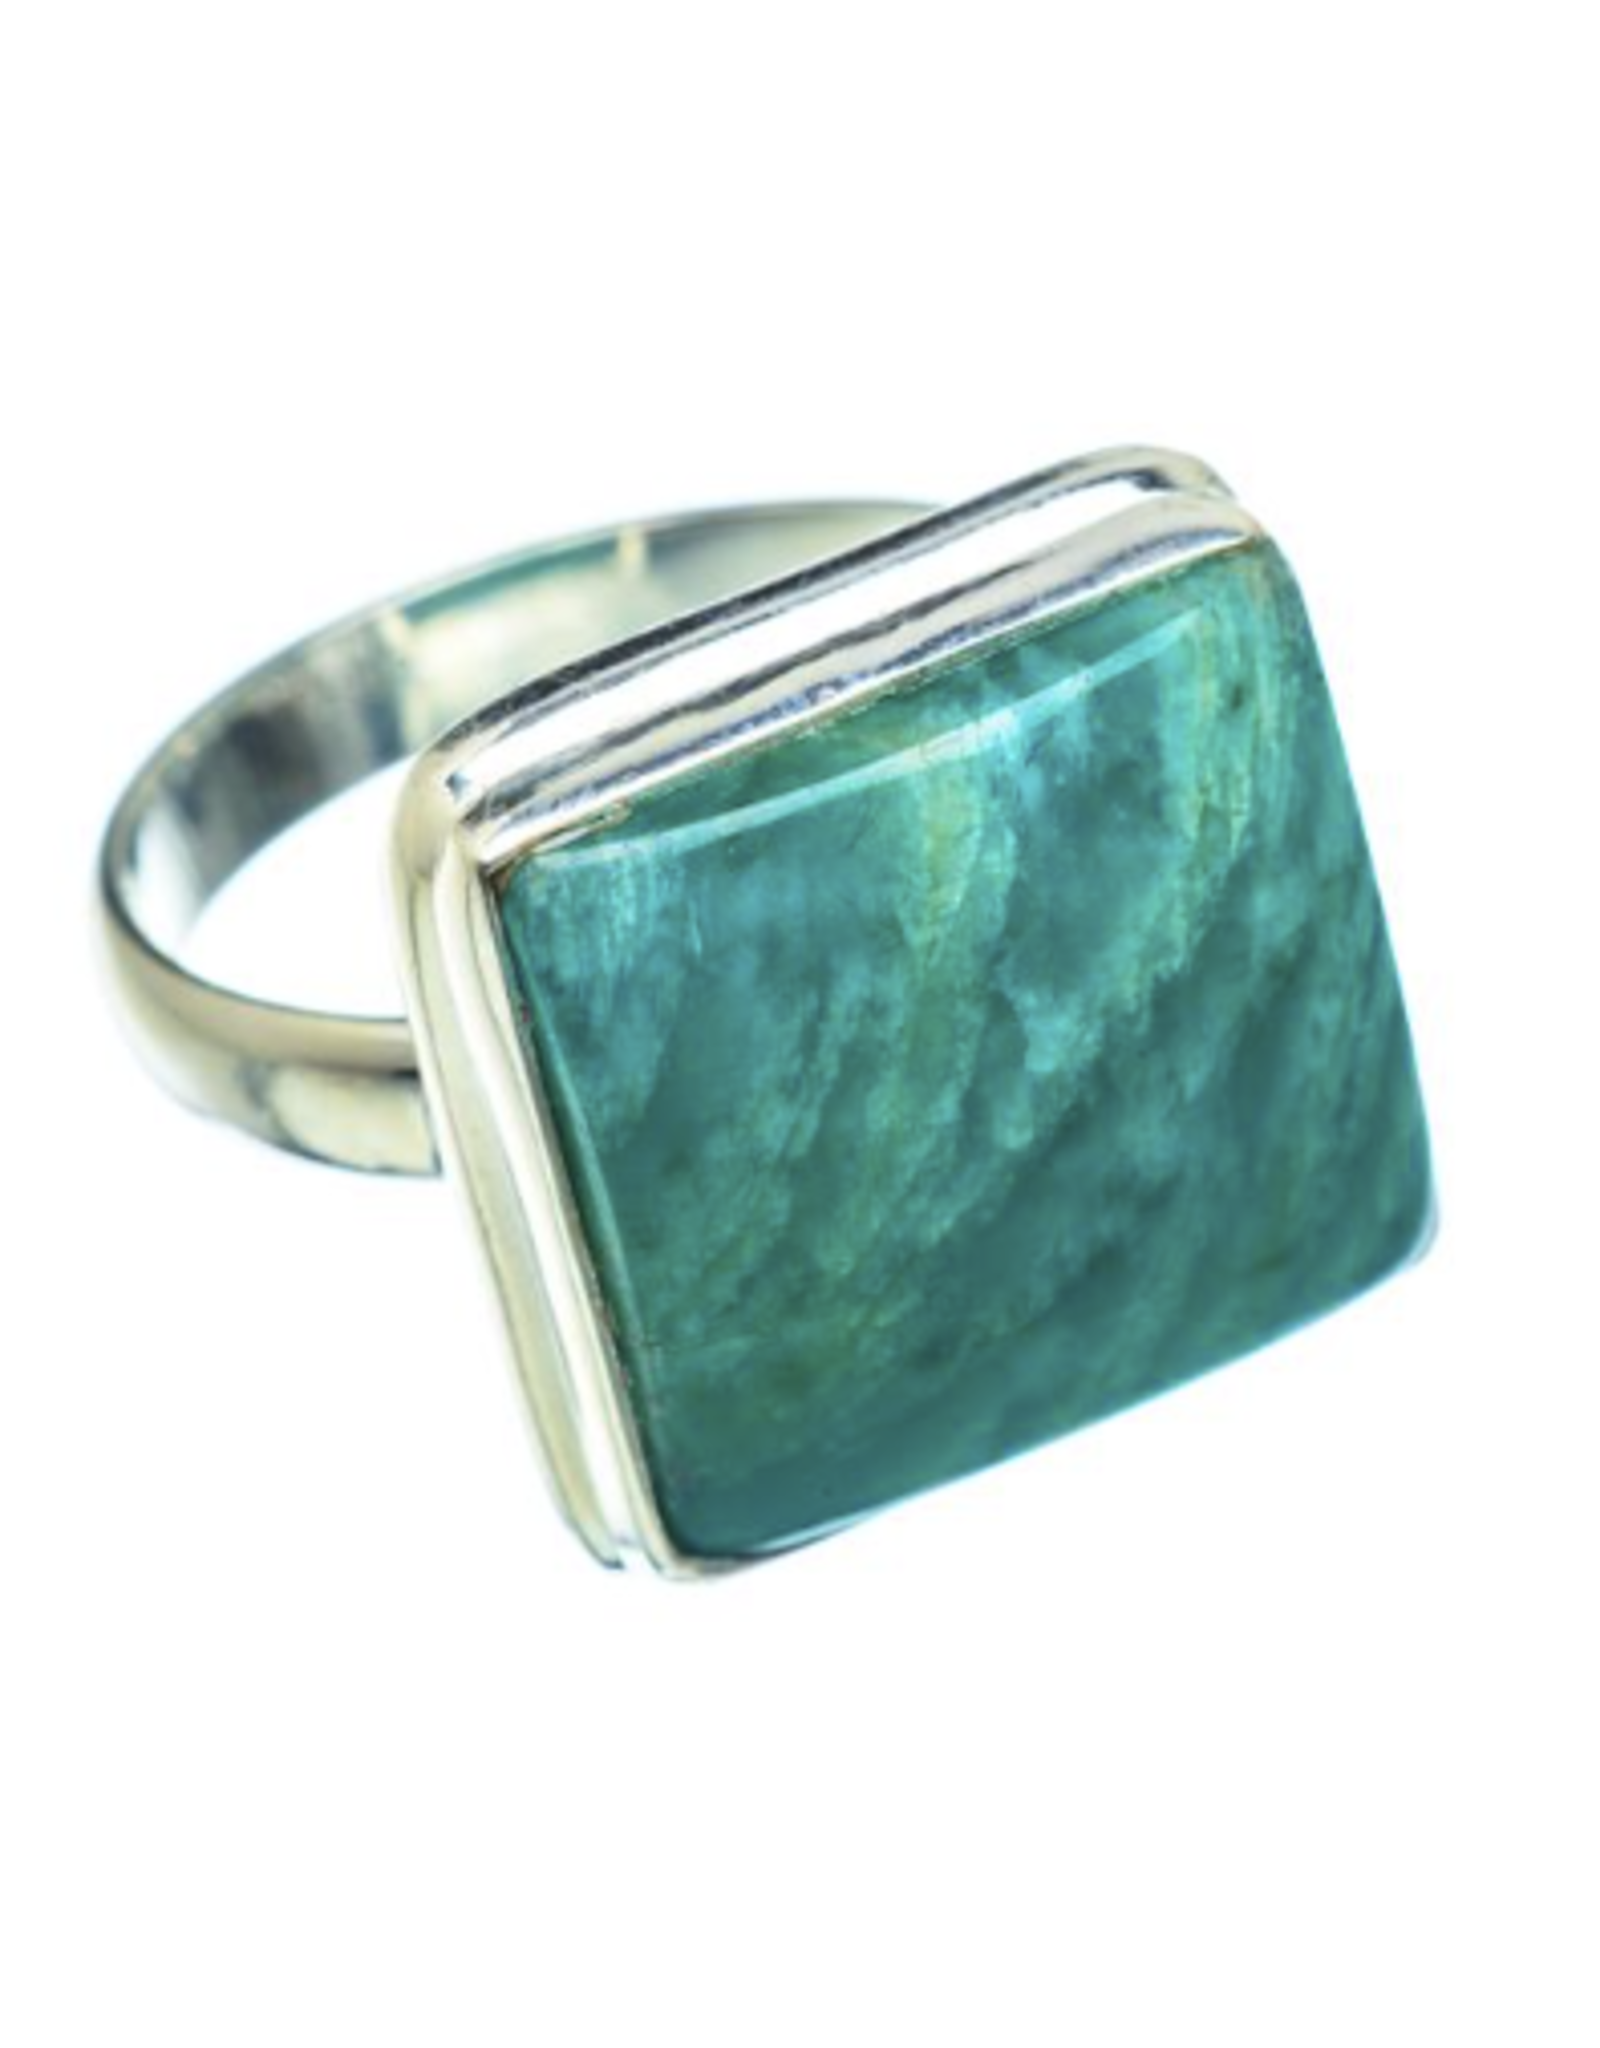 Amazonite Ring - Size 8.75